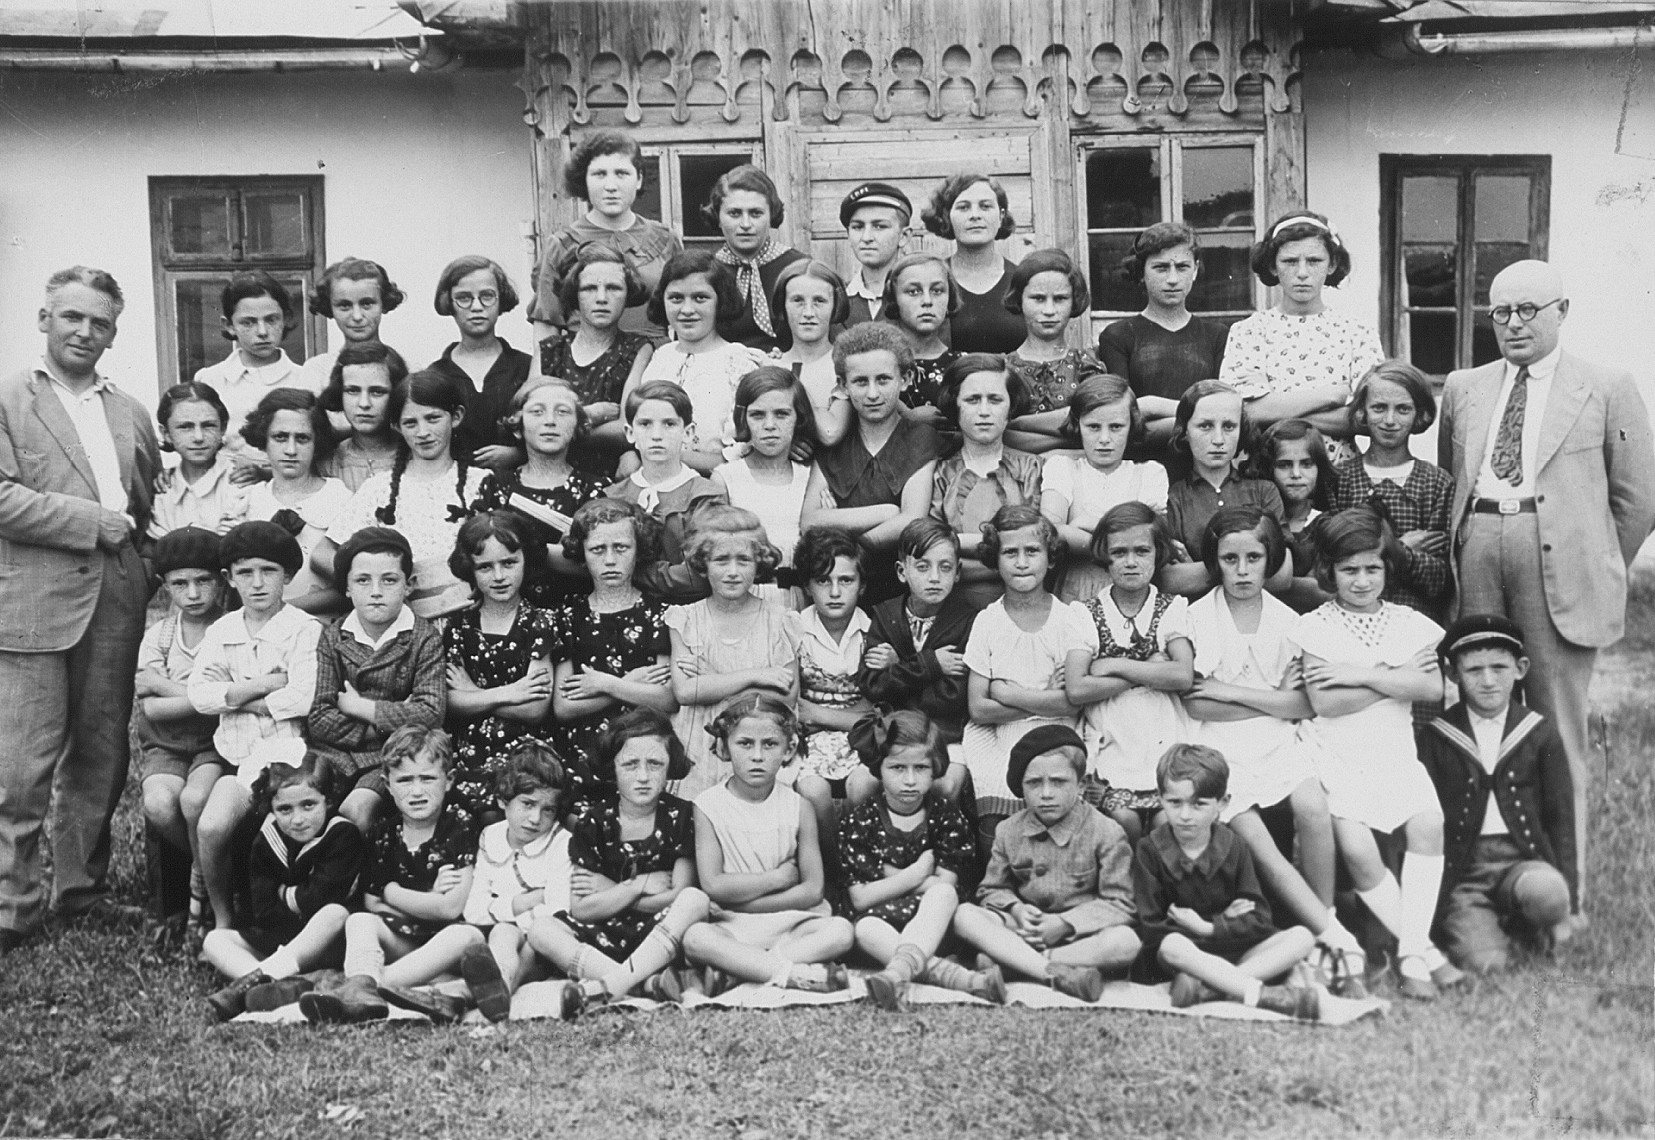 Group portrait of teachers and students of the Hebrew language school in Sanisesti, Romania.  The photo was taken on the occasion of the fifth anniversary of the school in 1936.  Among those pictured is Ephraim Neuman (the man standing on the far right).